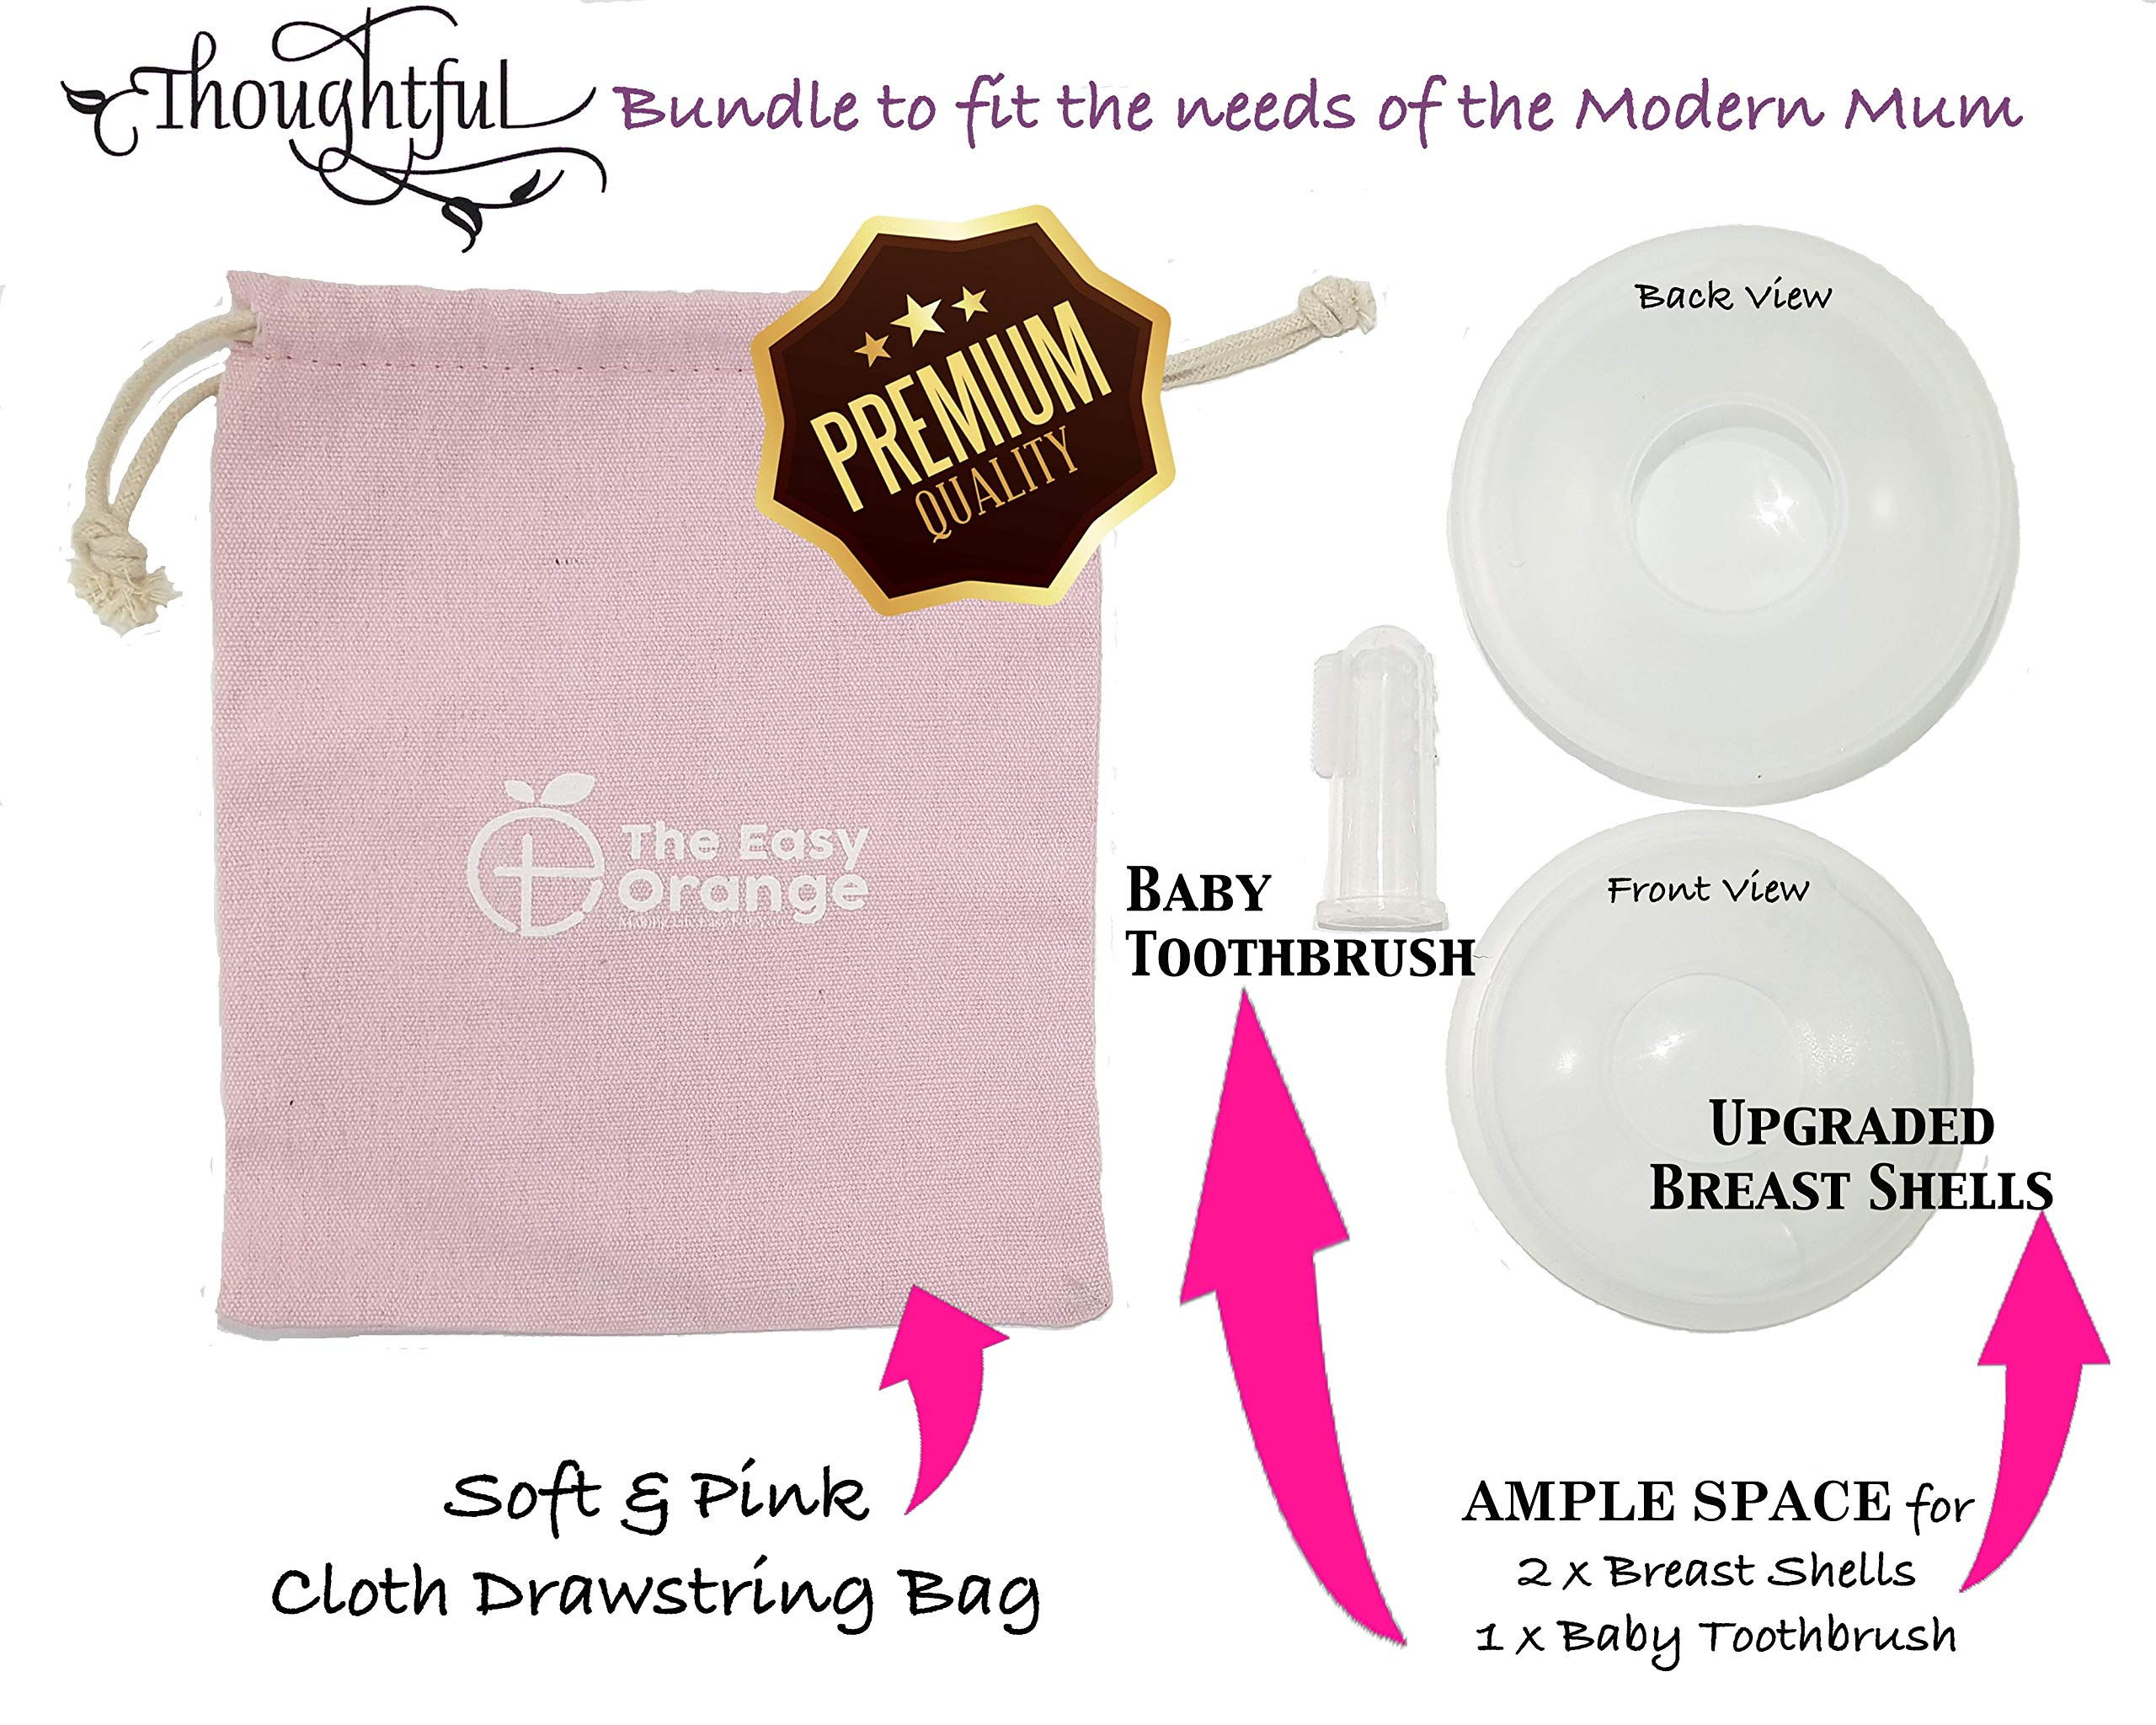 Breast Shells by The Easy Orange | Best Thoughtful Bundle with Free Drawstring Bag & Baby Toothbrush